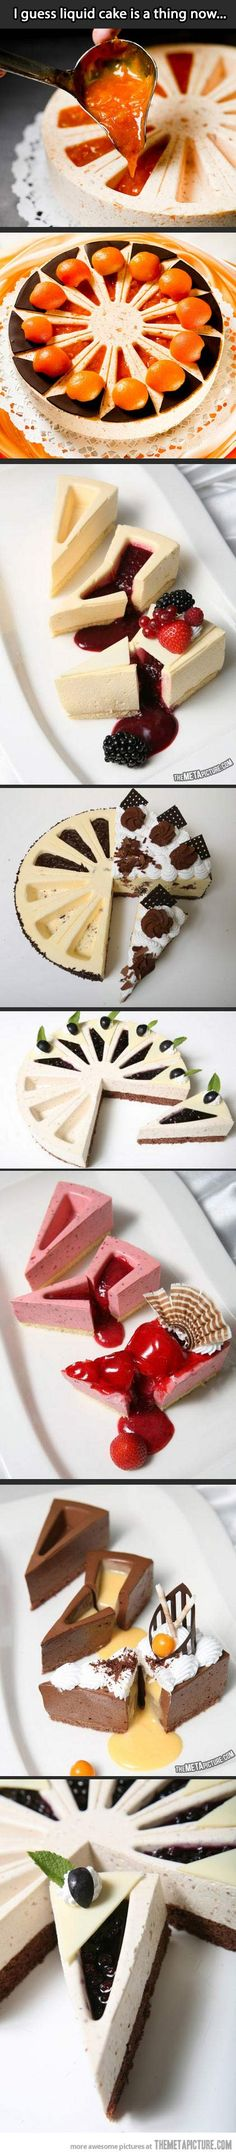 I'd eat it. I'd eat it. I'm thinking plain cheesecake with liquid strawberry :DLiquid cake? I'd eat it. I'm thinking plain cheesecake with liquid strawberry :D Just Desserts, Delicious Desserts, Yummy Food, Baking Desserts, Yummy Yummy, Sweet Recipes, Cake Recipes, Dessert Recipes, Cupcakes